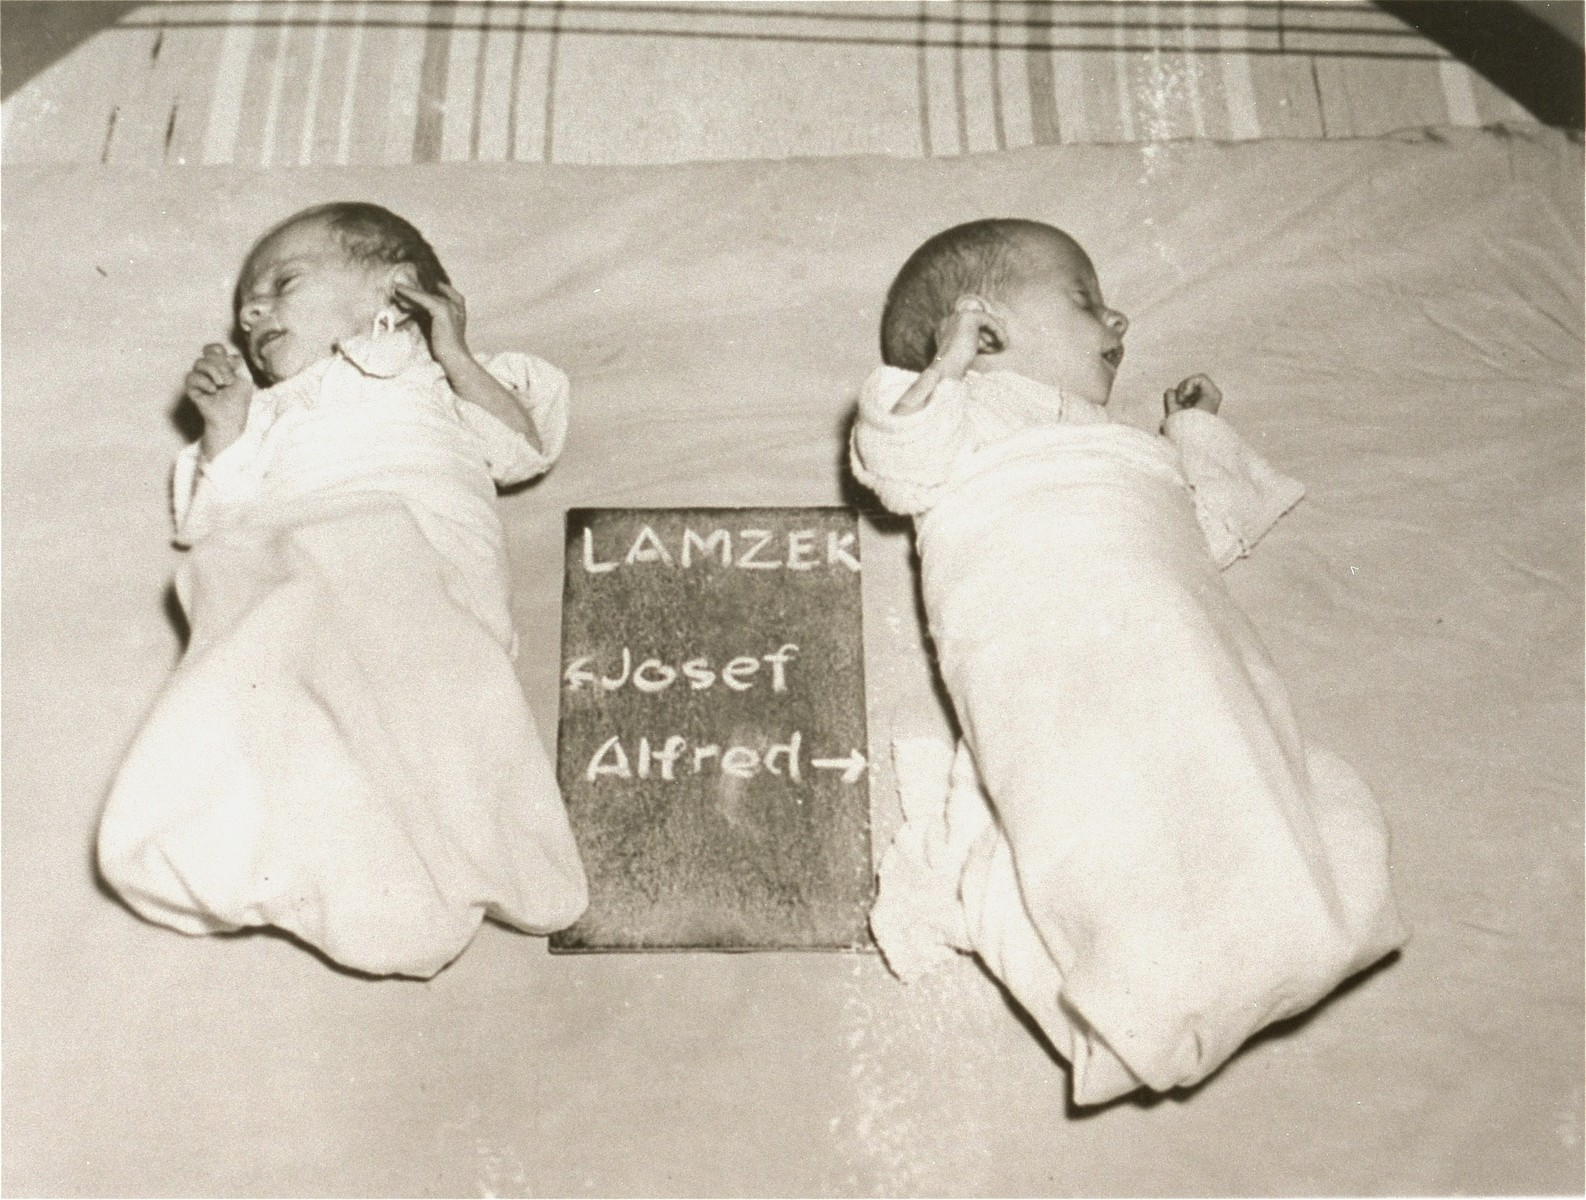 Josef and Alfred Lamzek with a name card intended to help any of their surviving family members locate them at the Kloster Indersdorf DP camp.  This photograph was published in newspapers to facilitate reuniting the family.